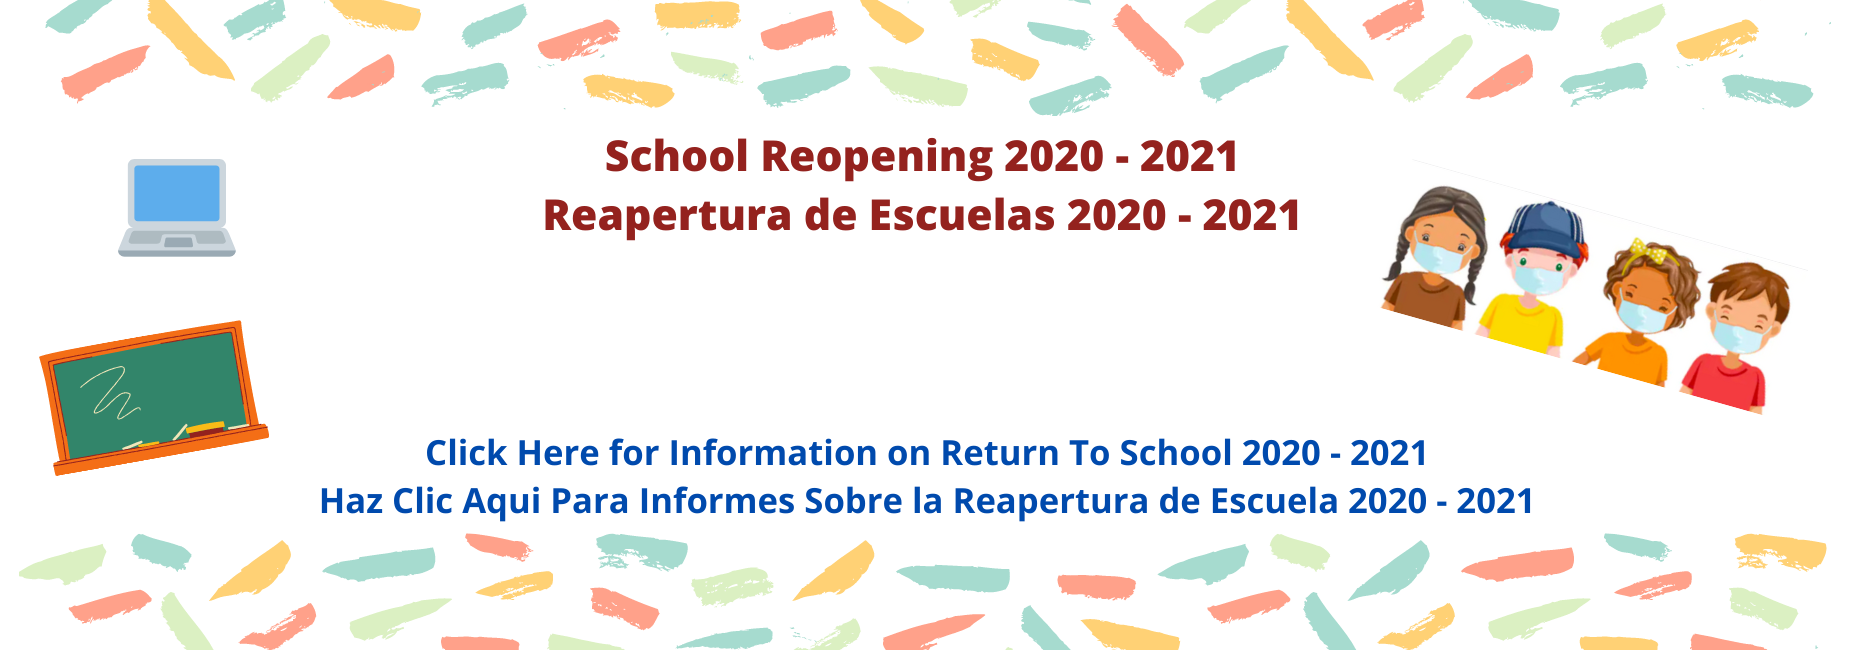 School Reopening Image Bilingual with NYCDOE Link